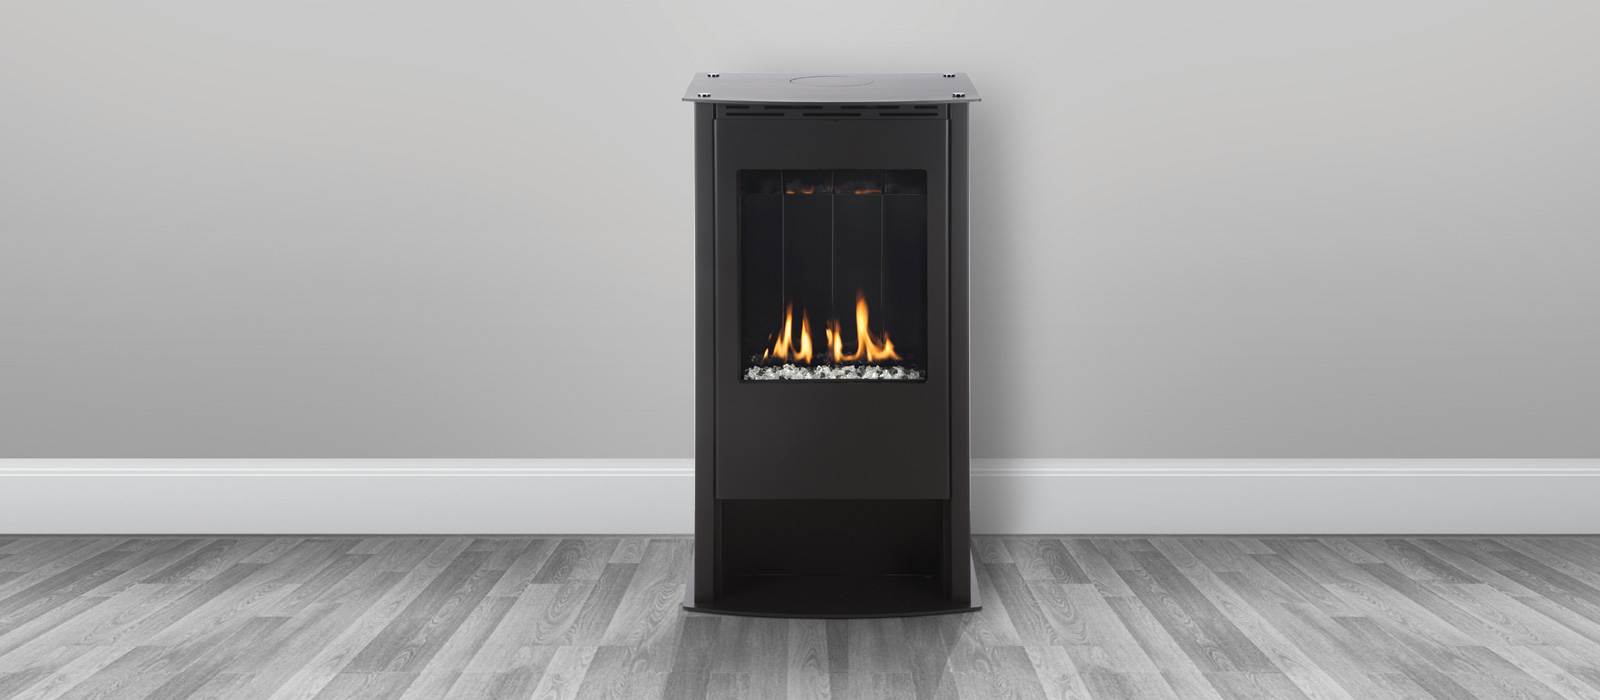 Solas One6 Fs Rettinger Fireplace